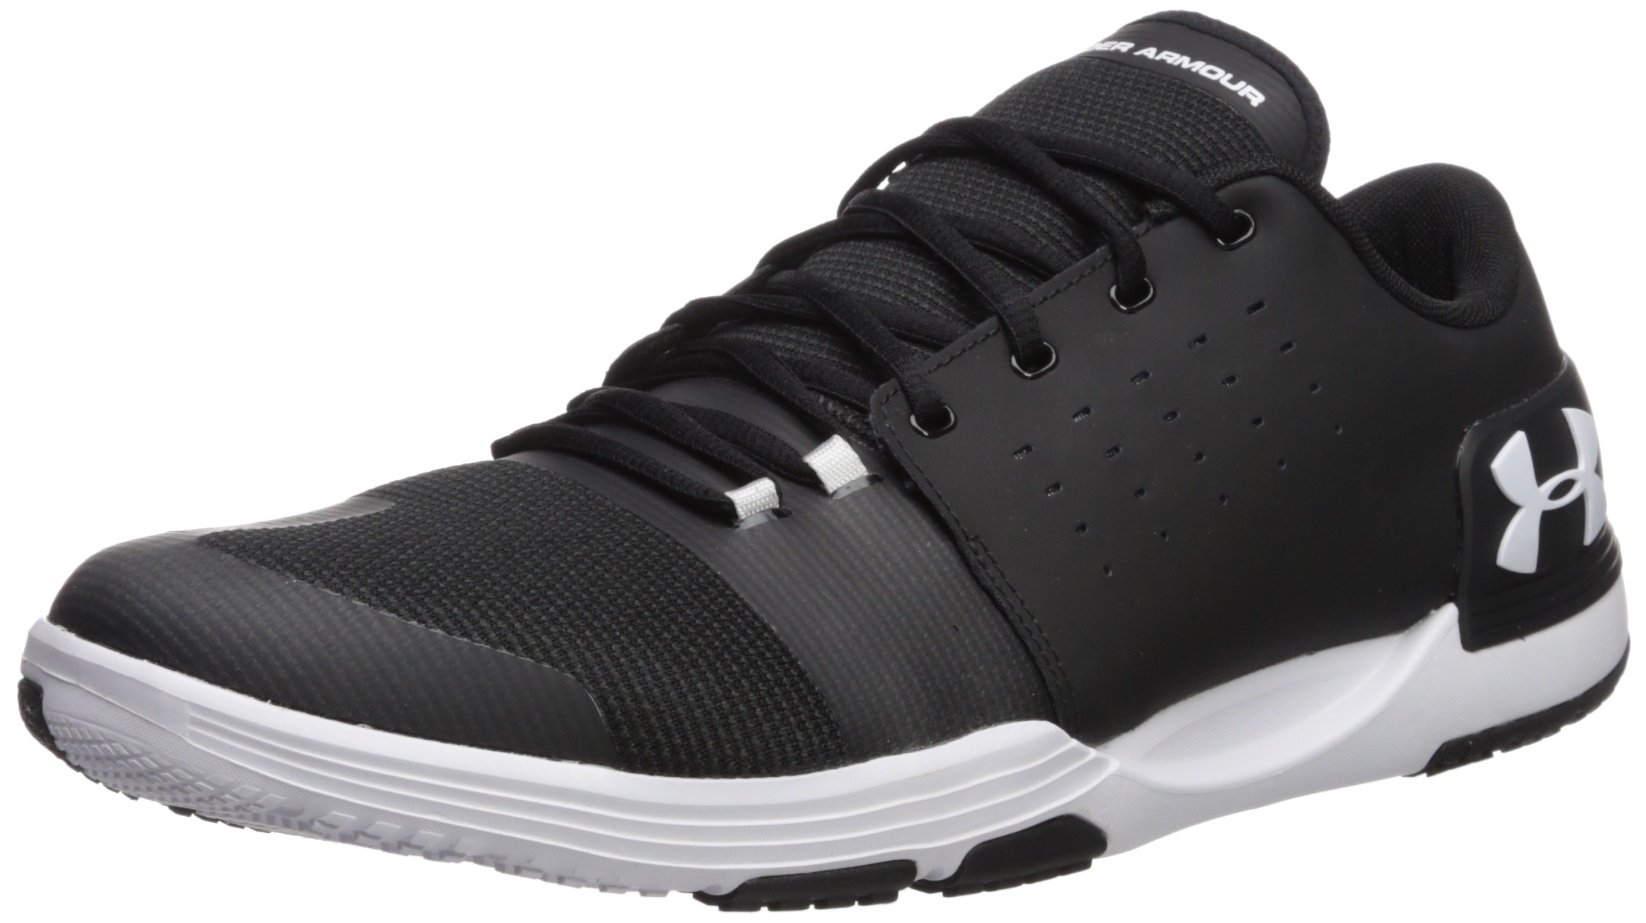 Under Armour Men's Limitless 3 Sneaker, Black (001)/White, 11.5 by Under Armour